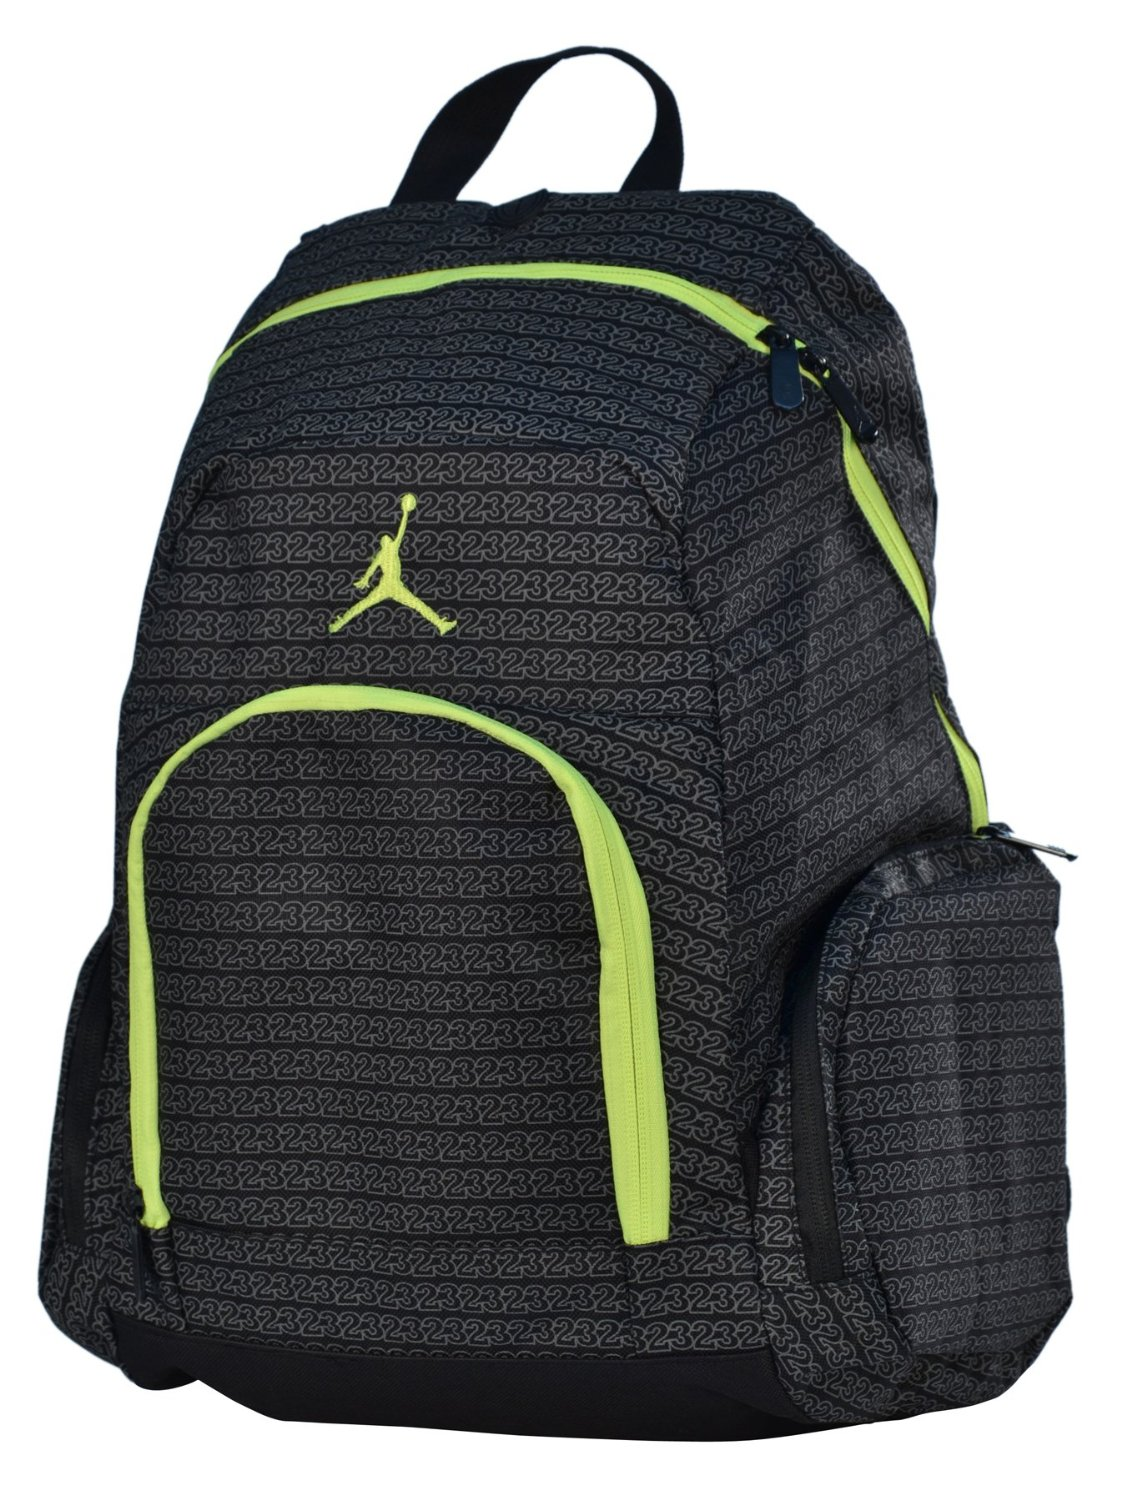 Jordan Nike Air Jumpman 23 Backpack Laptop Book Bag-Black/Yellow